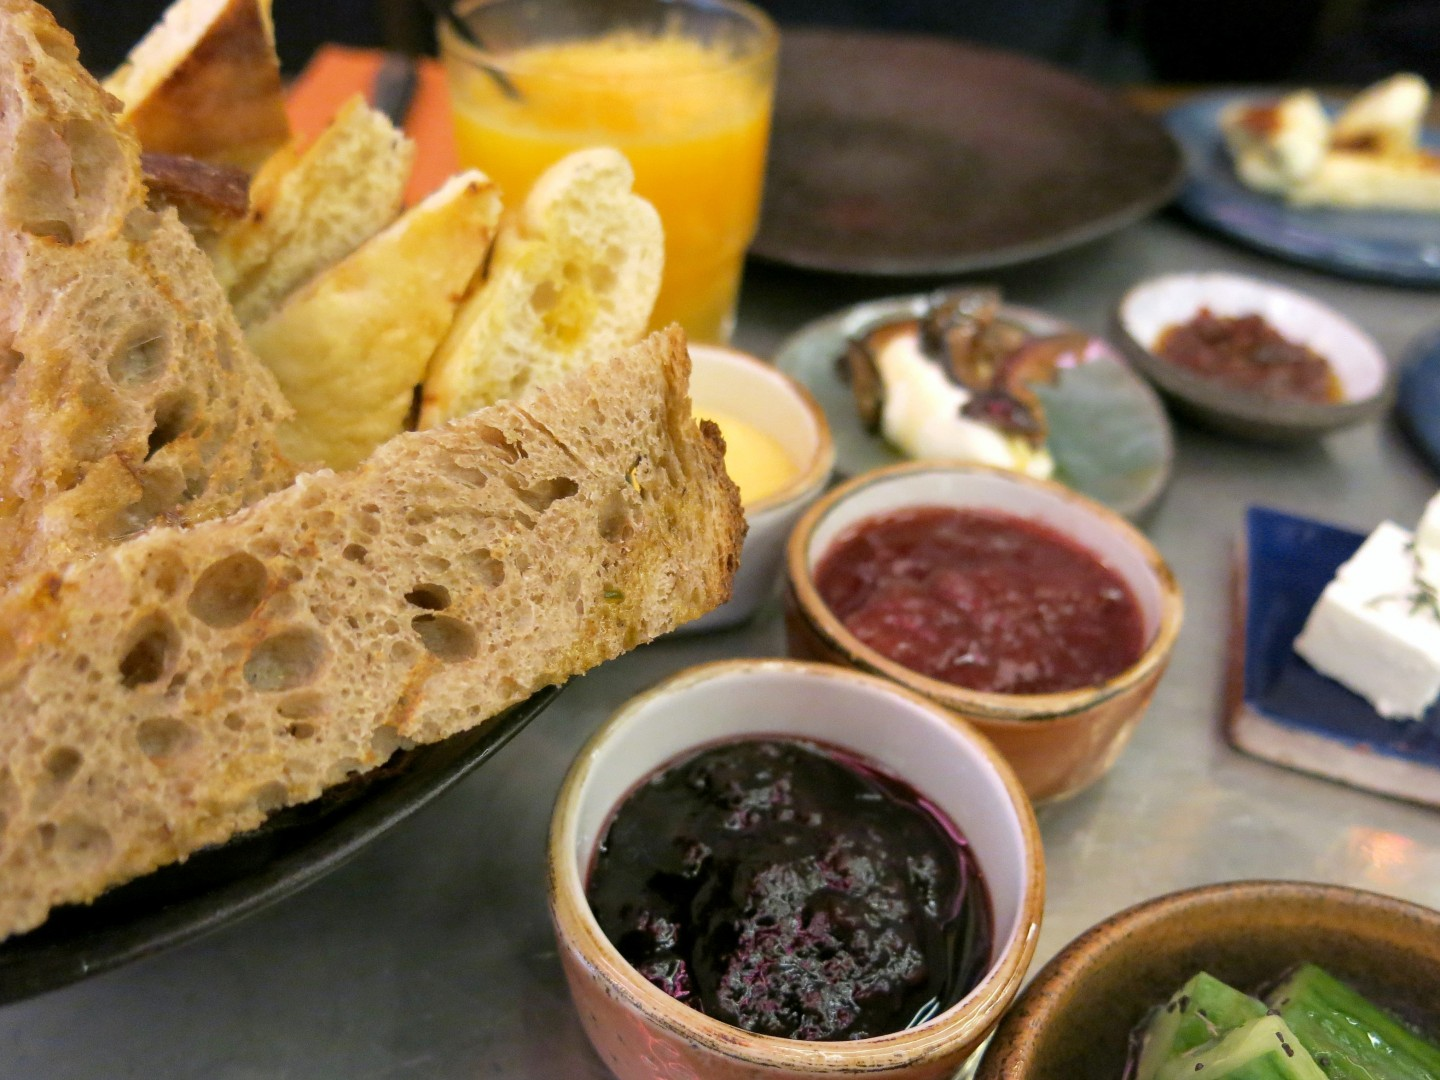 The homemade jams and warm bread part of the breakfast meze at Firedog, just moments from Oxford Street.